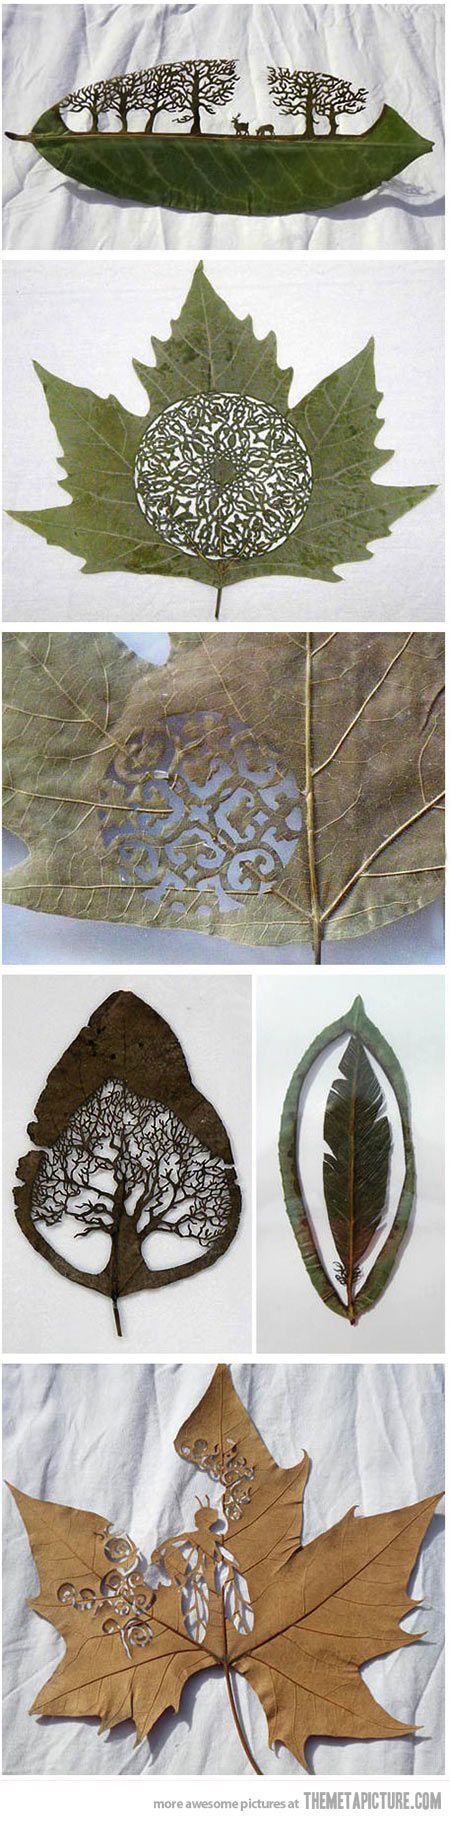 Lorenzo Duran Silva, 43, from Guadalajara, near Madrid, was inspired to create the delicate pieces after watching a caterpillar make holes in a leaf by eating it.: